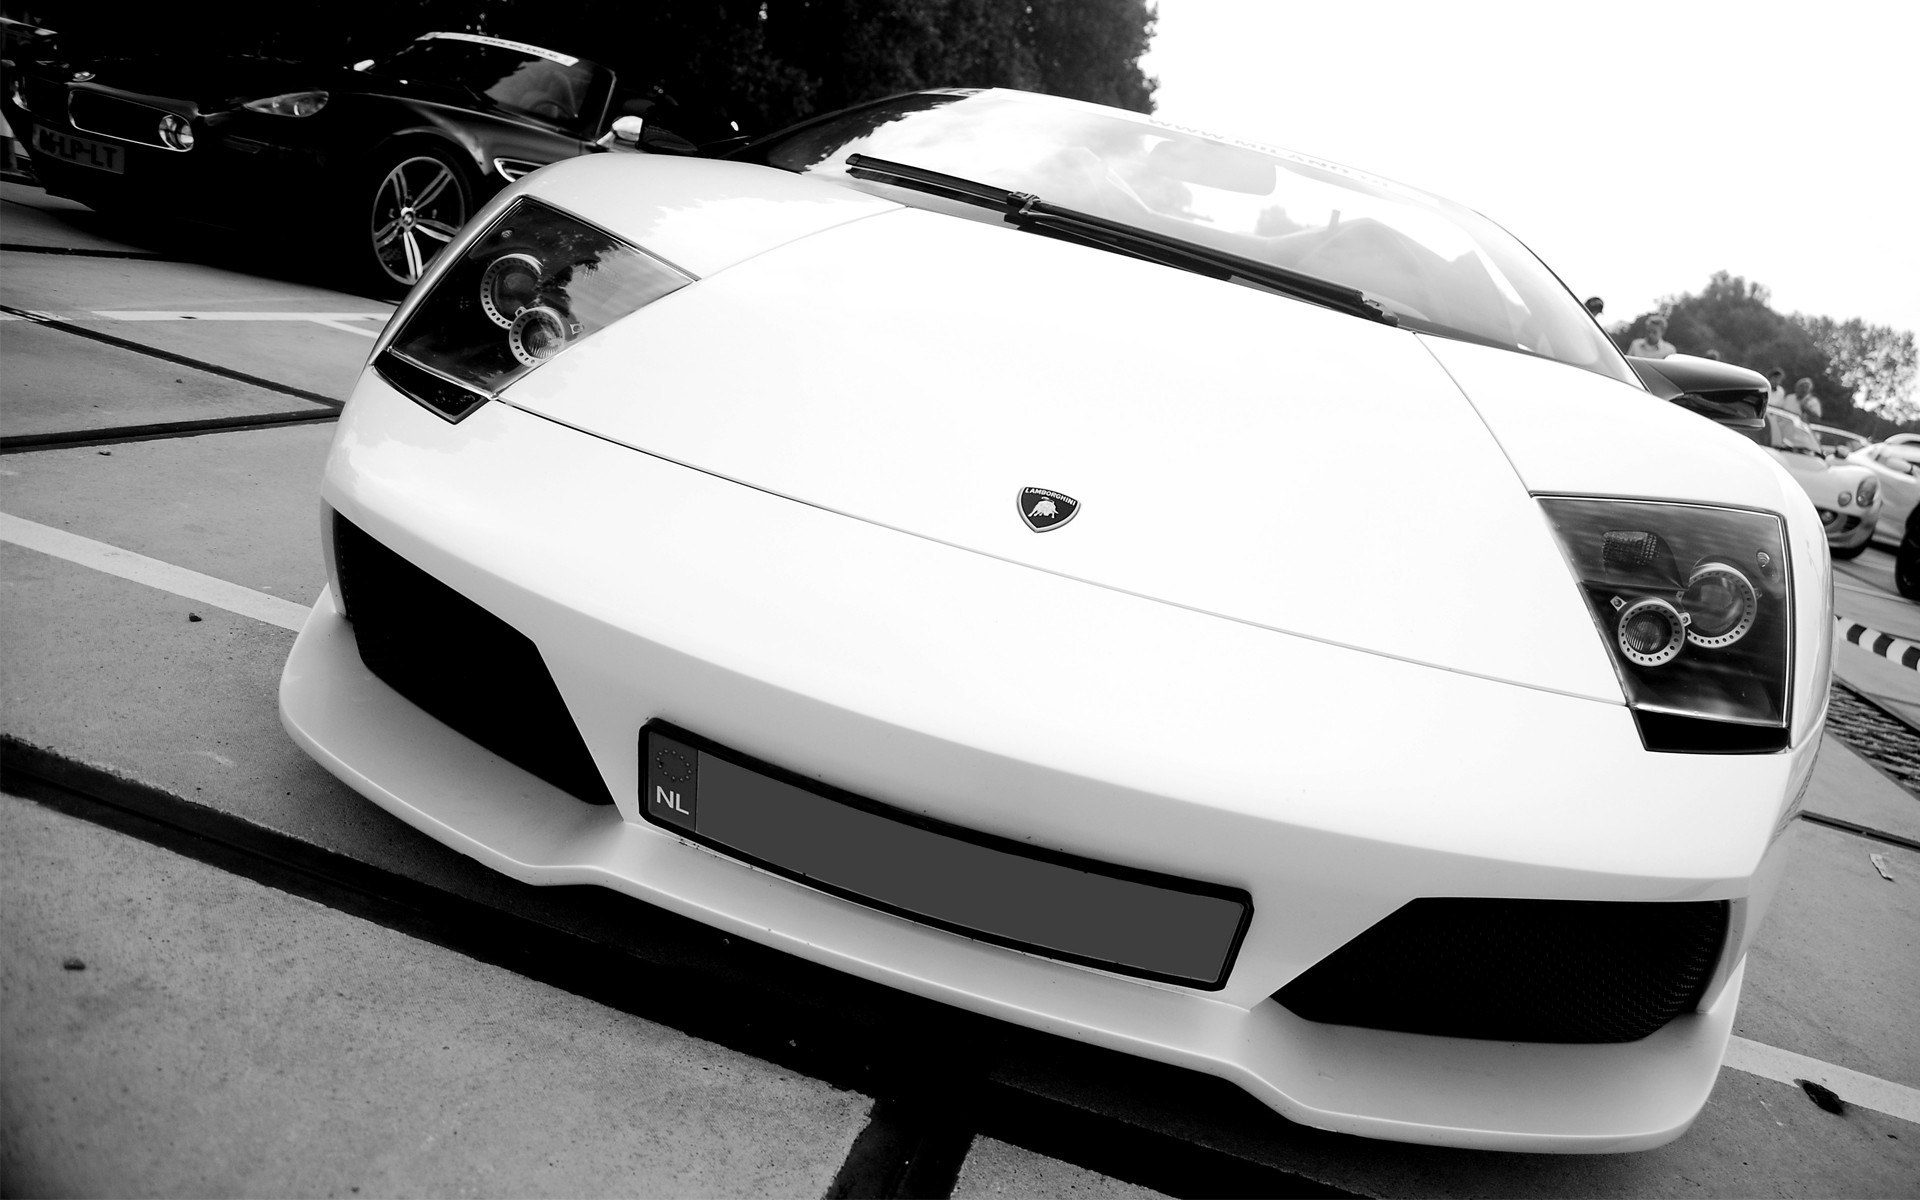 cars Lamborghini monochrome lamborghini HD Wallpaper